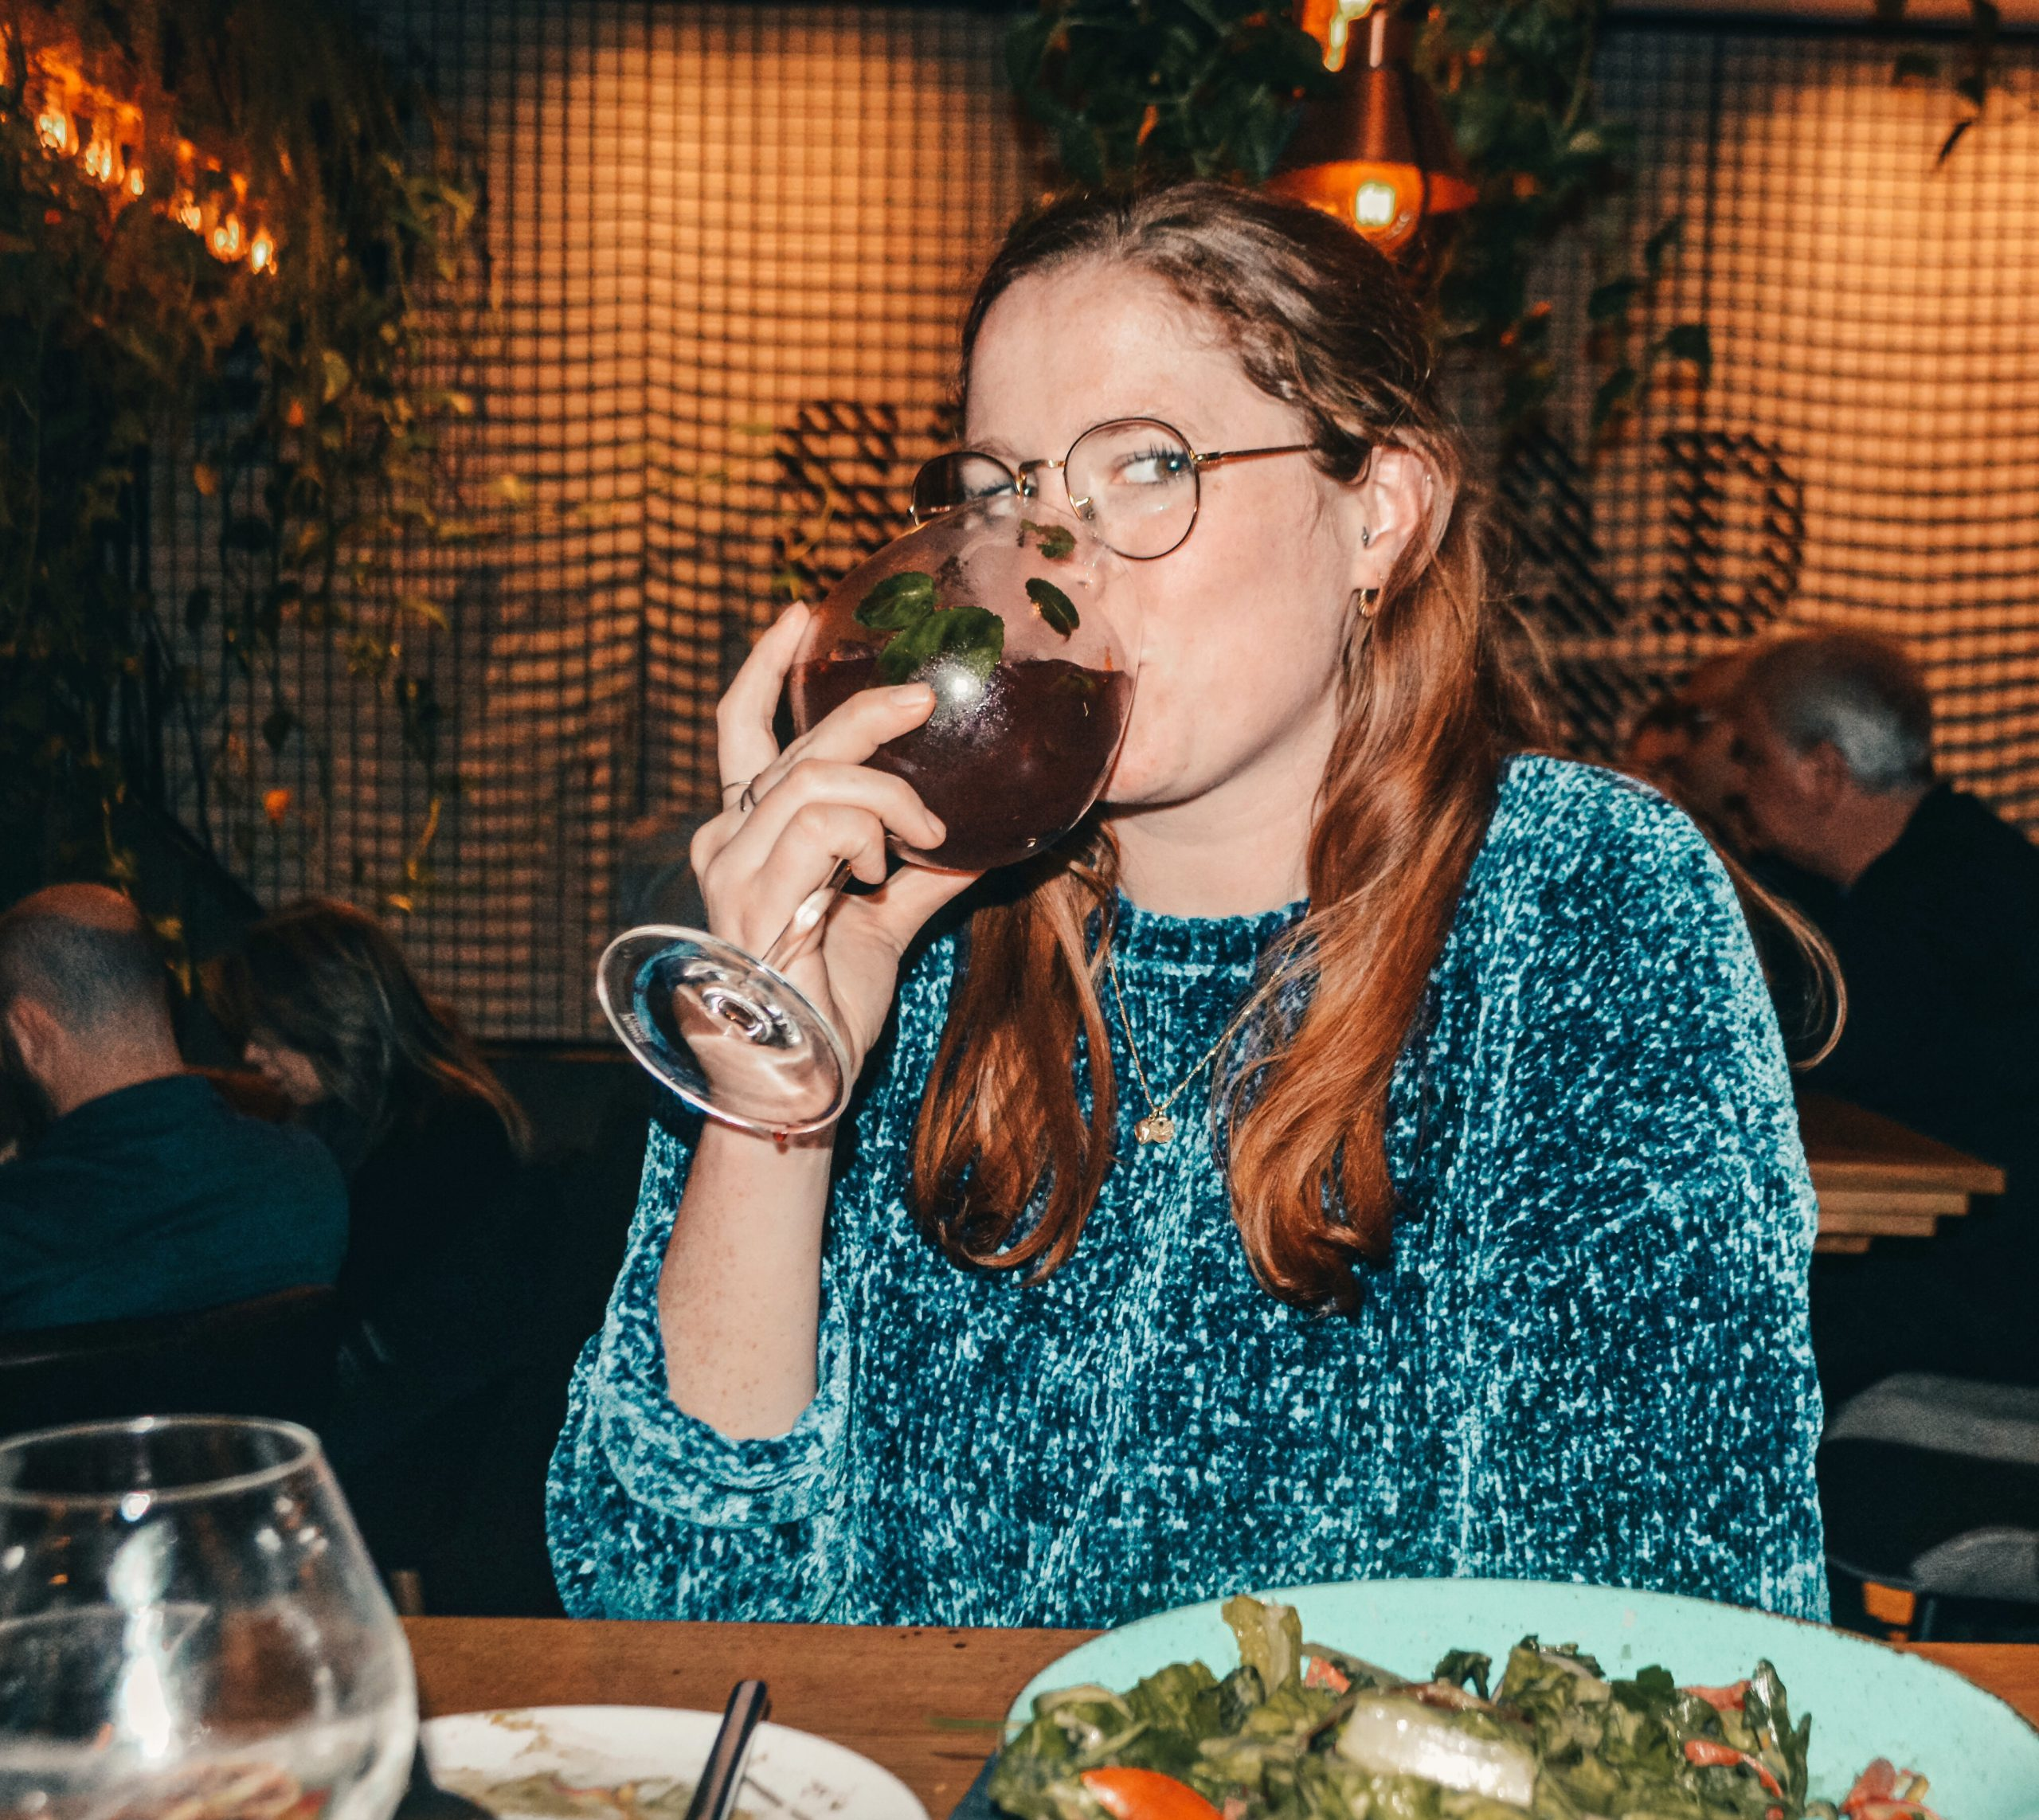 Girl drinking a large glass of sangria in a blue sweater at a vegan bar.